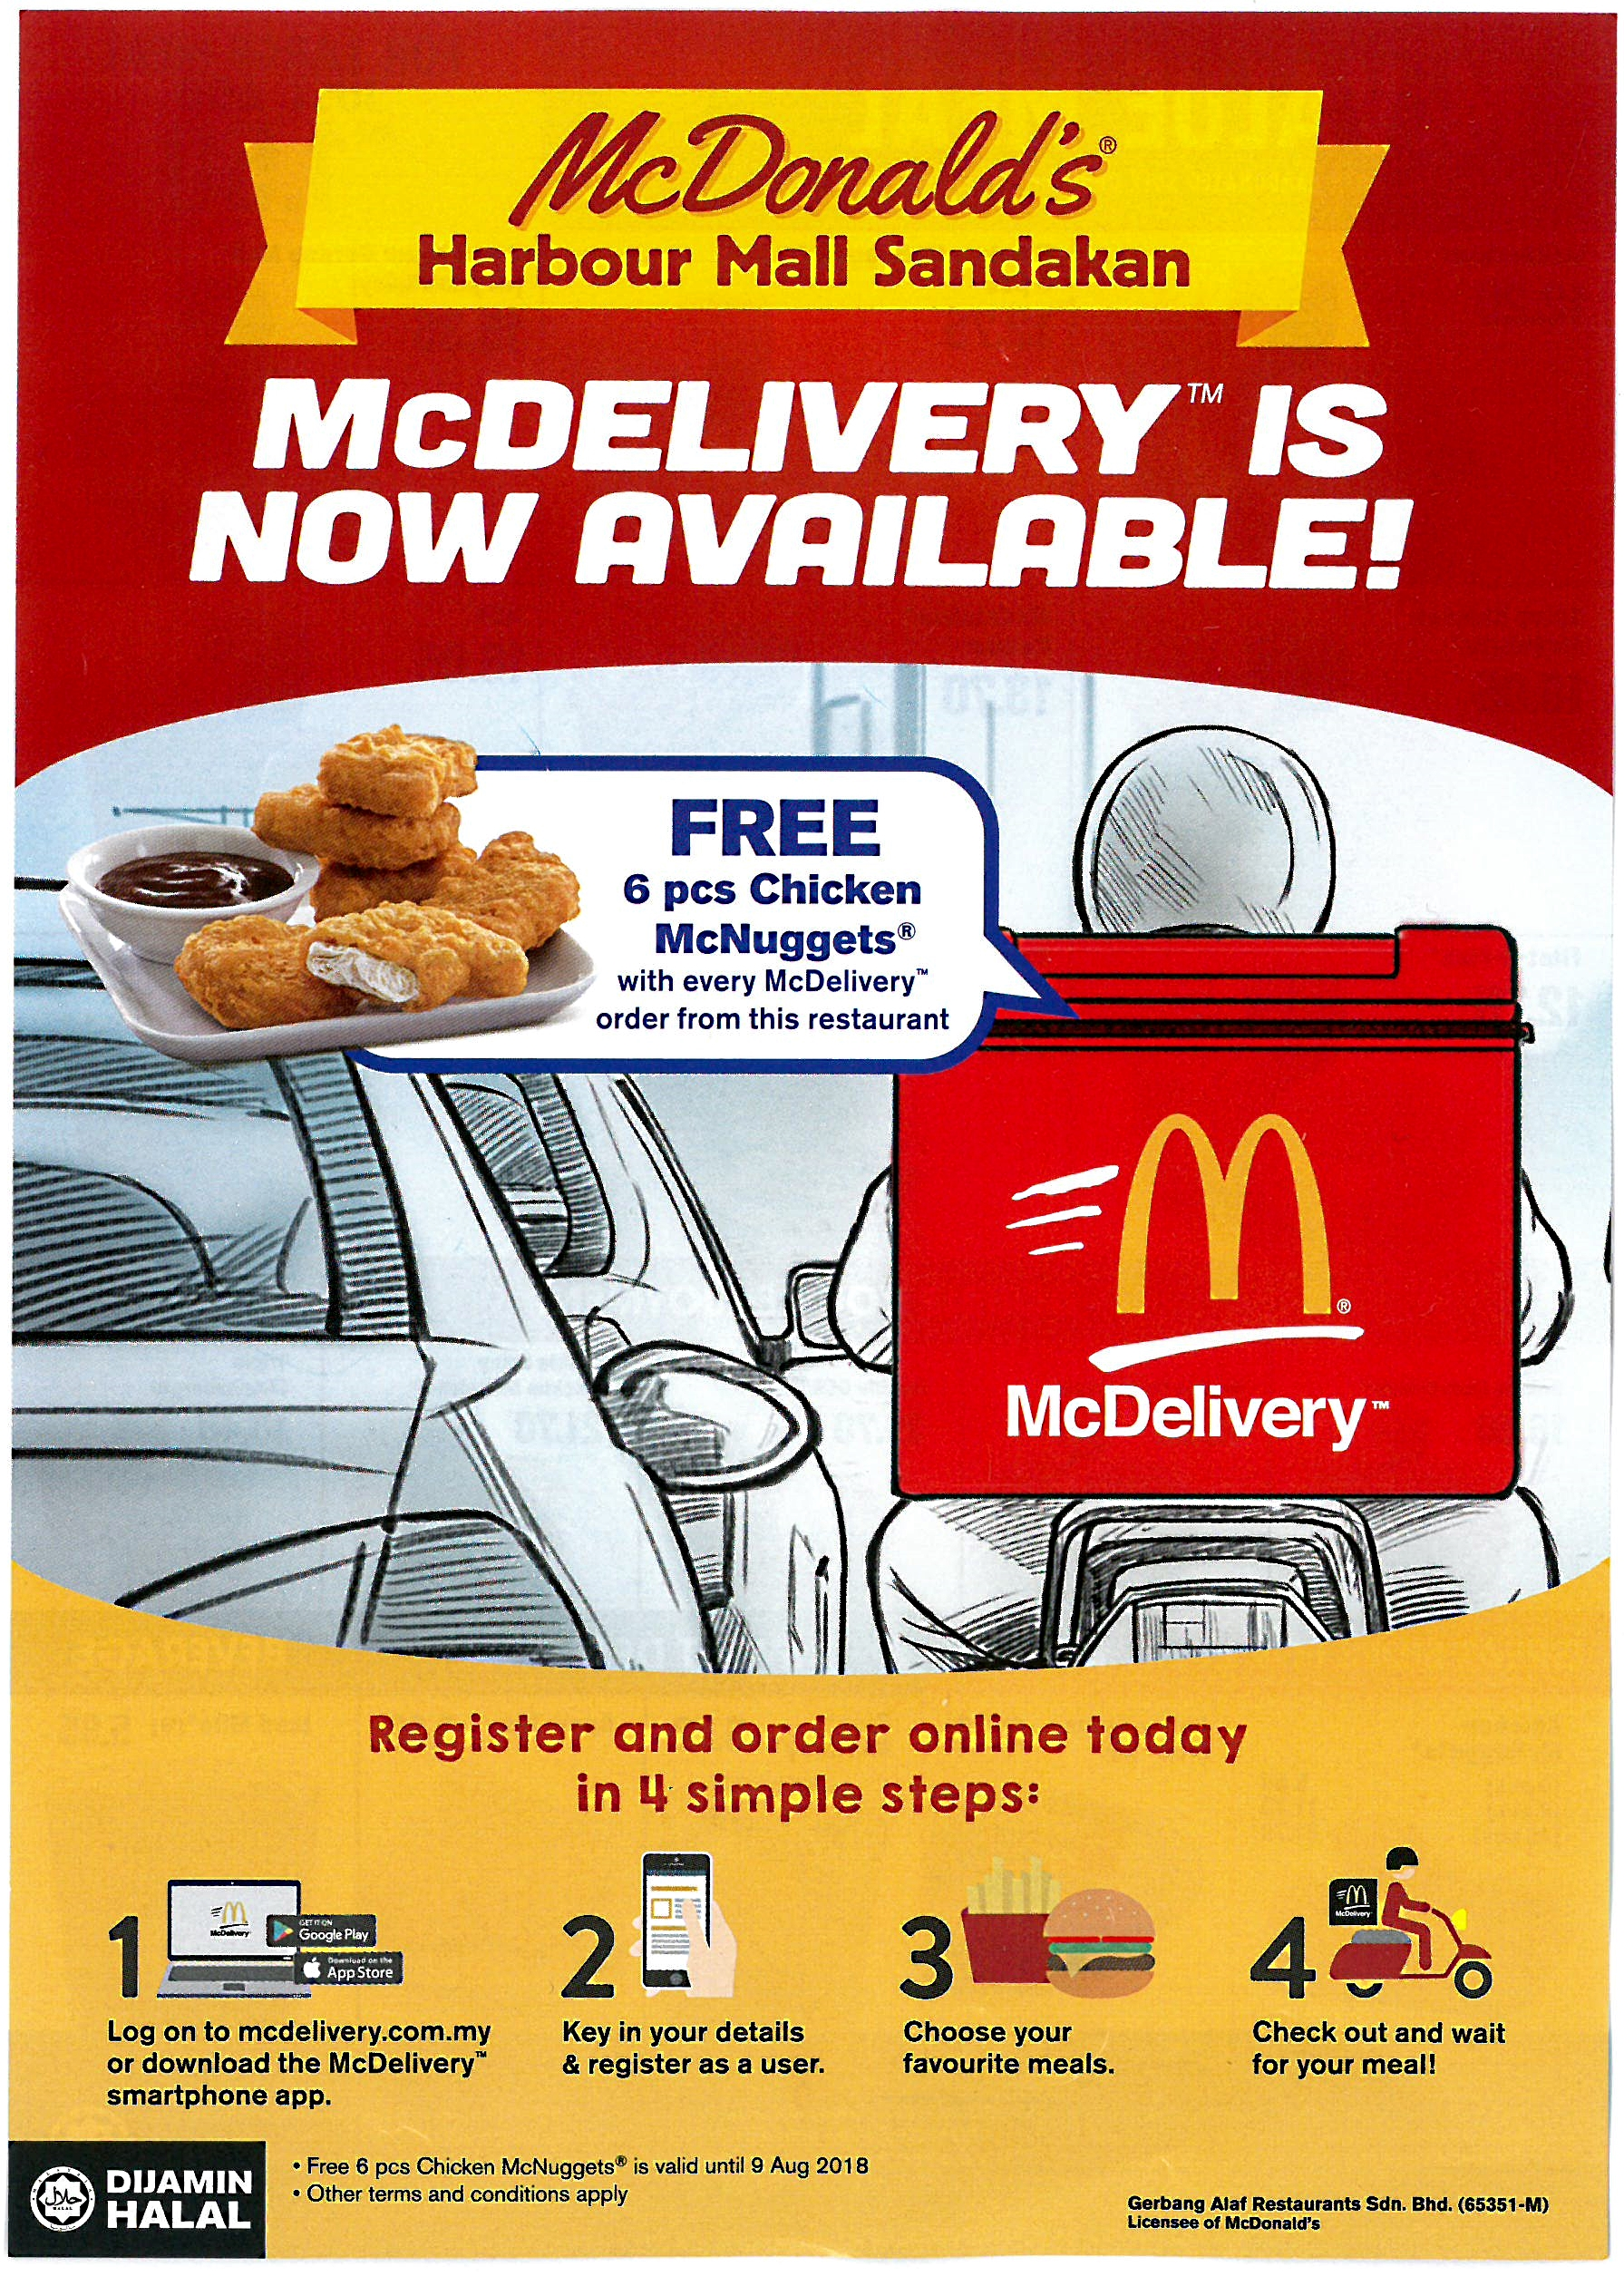 McDevilery is now available at McD Harbour Mall Sandakan